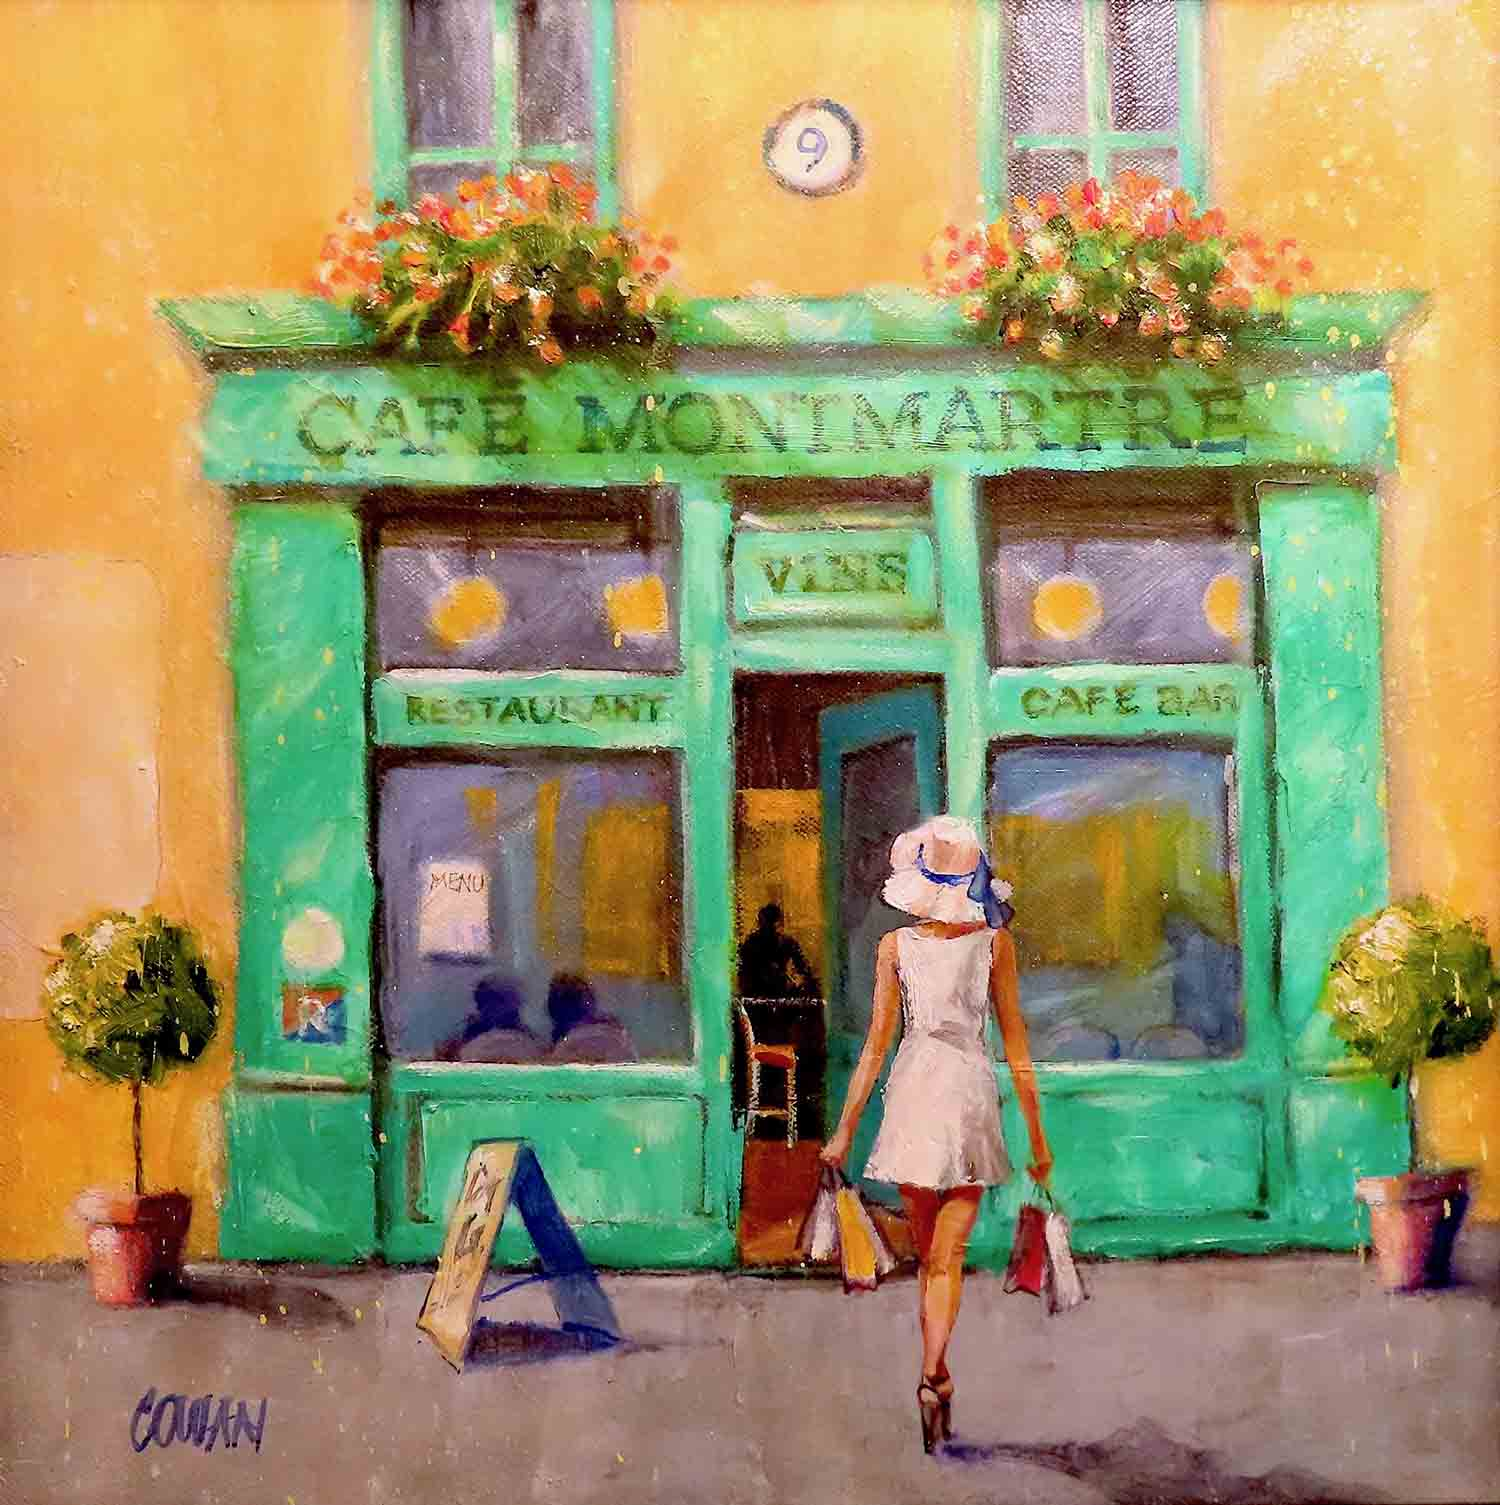 Cafe Montmartre by Brian Cowan